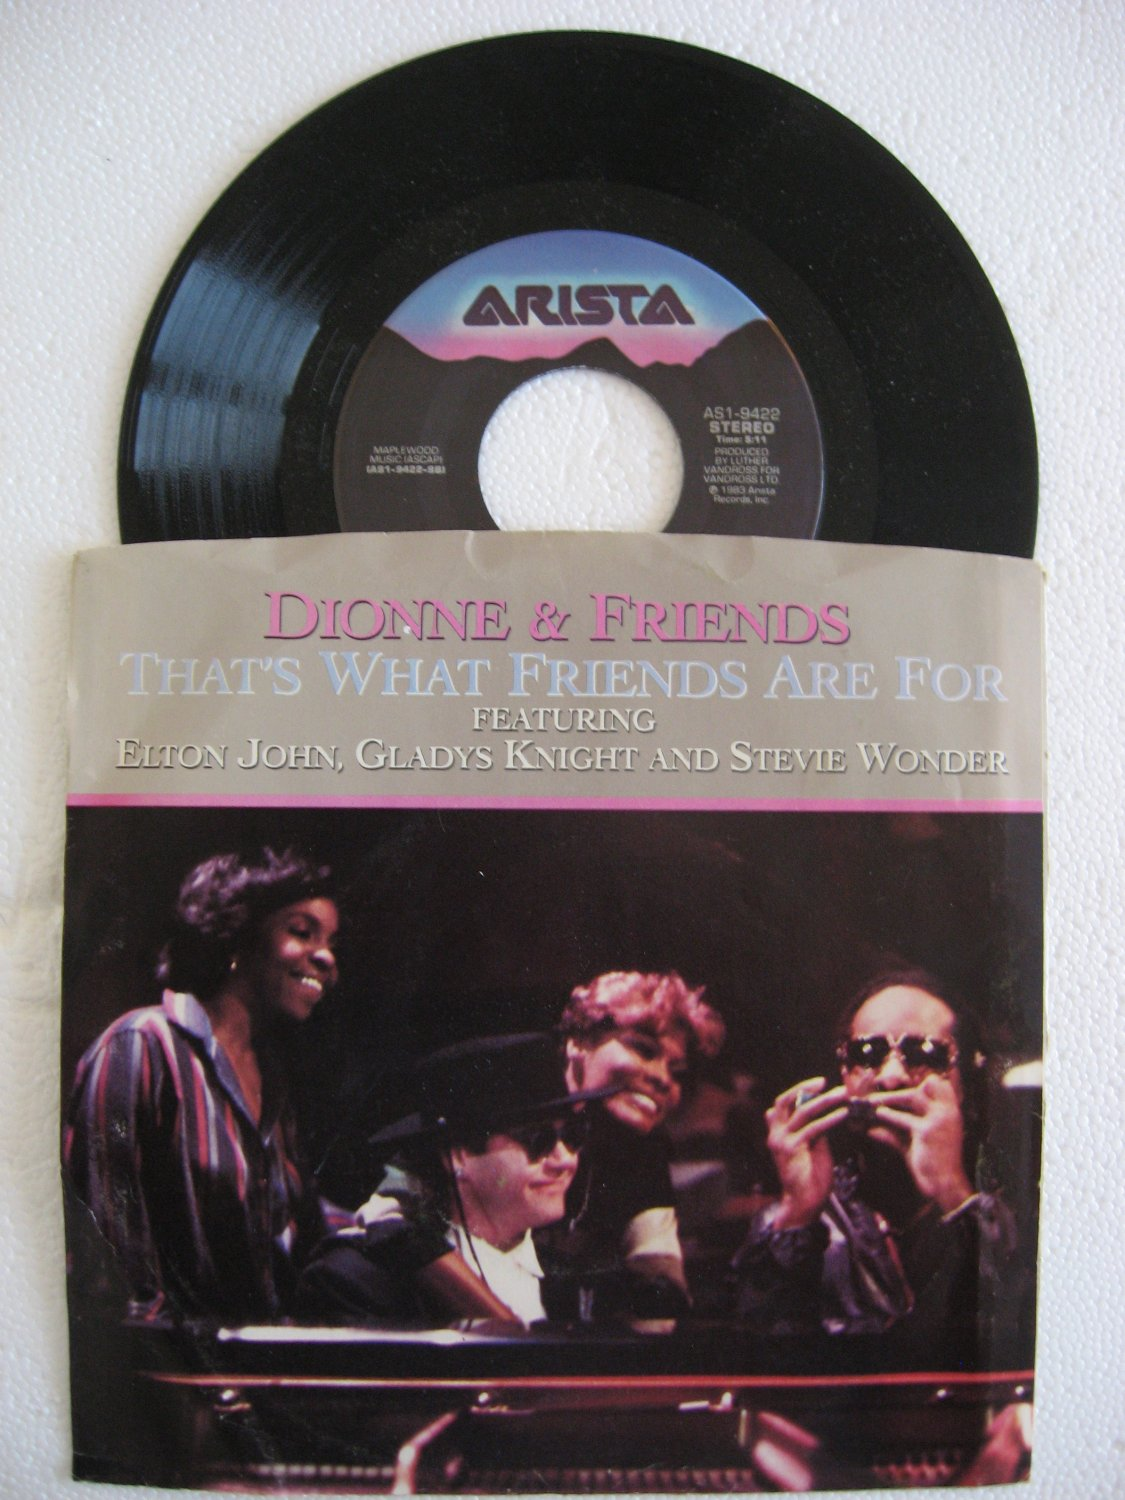 Dionne & Friends - That's What Friends Are For    (Vinyl Record)